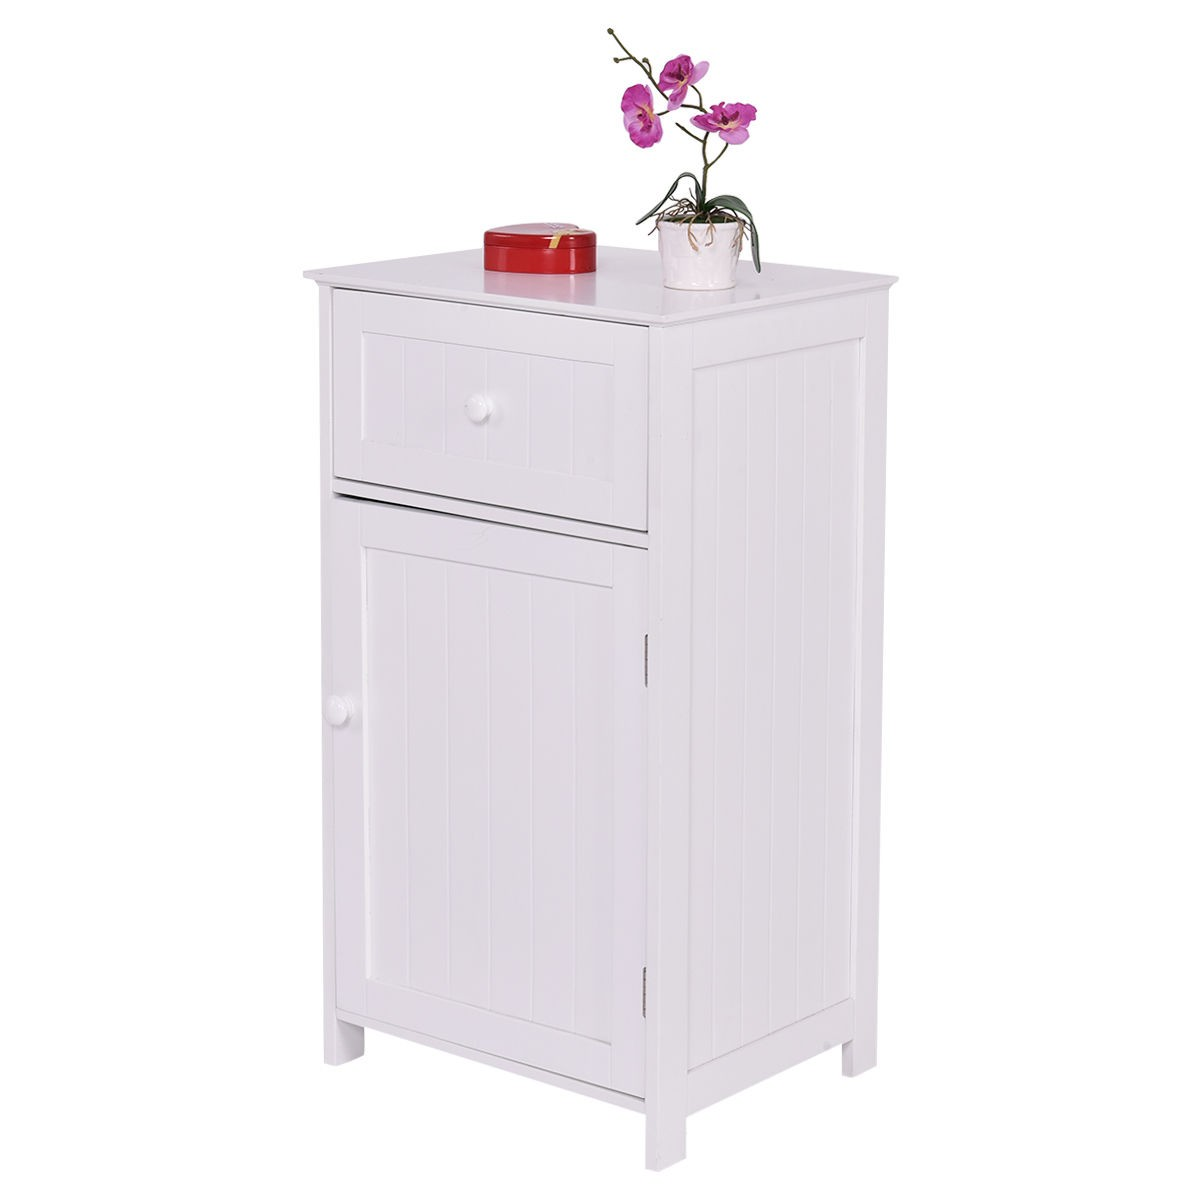 bathroom cabinets for storage bathroom storage cabinet floor stand white wood furniture 11281